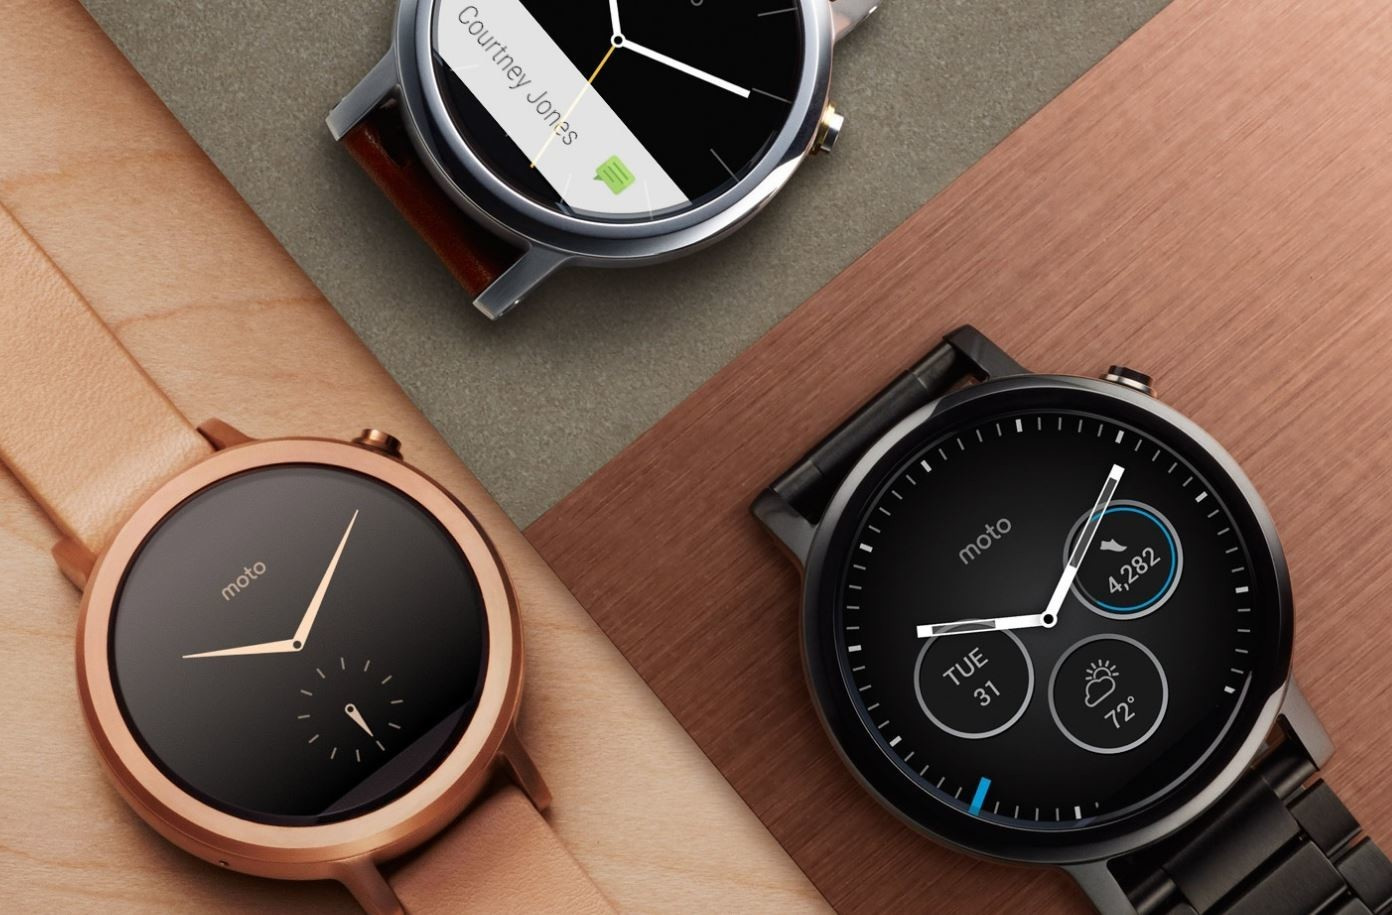 LG To Launch 2 New Android Wear 2.0 Smartwatches